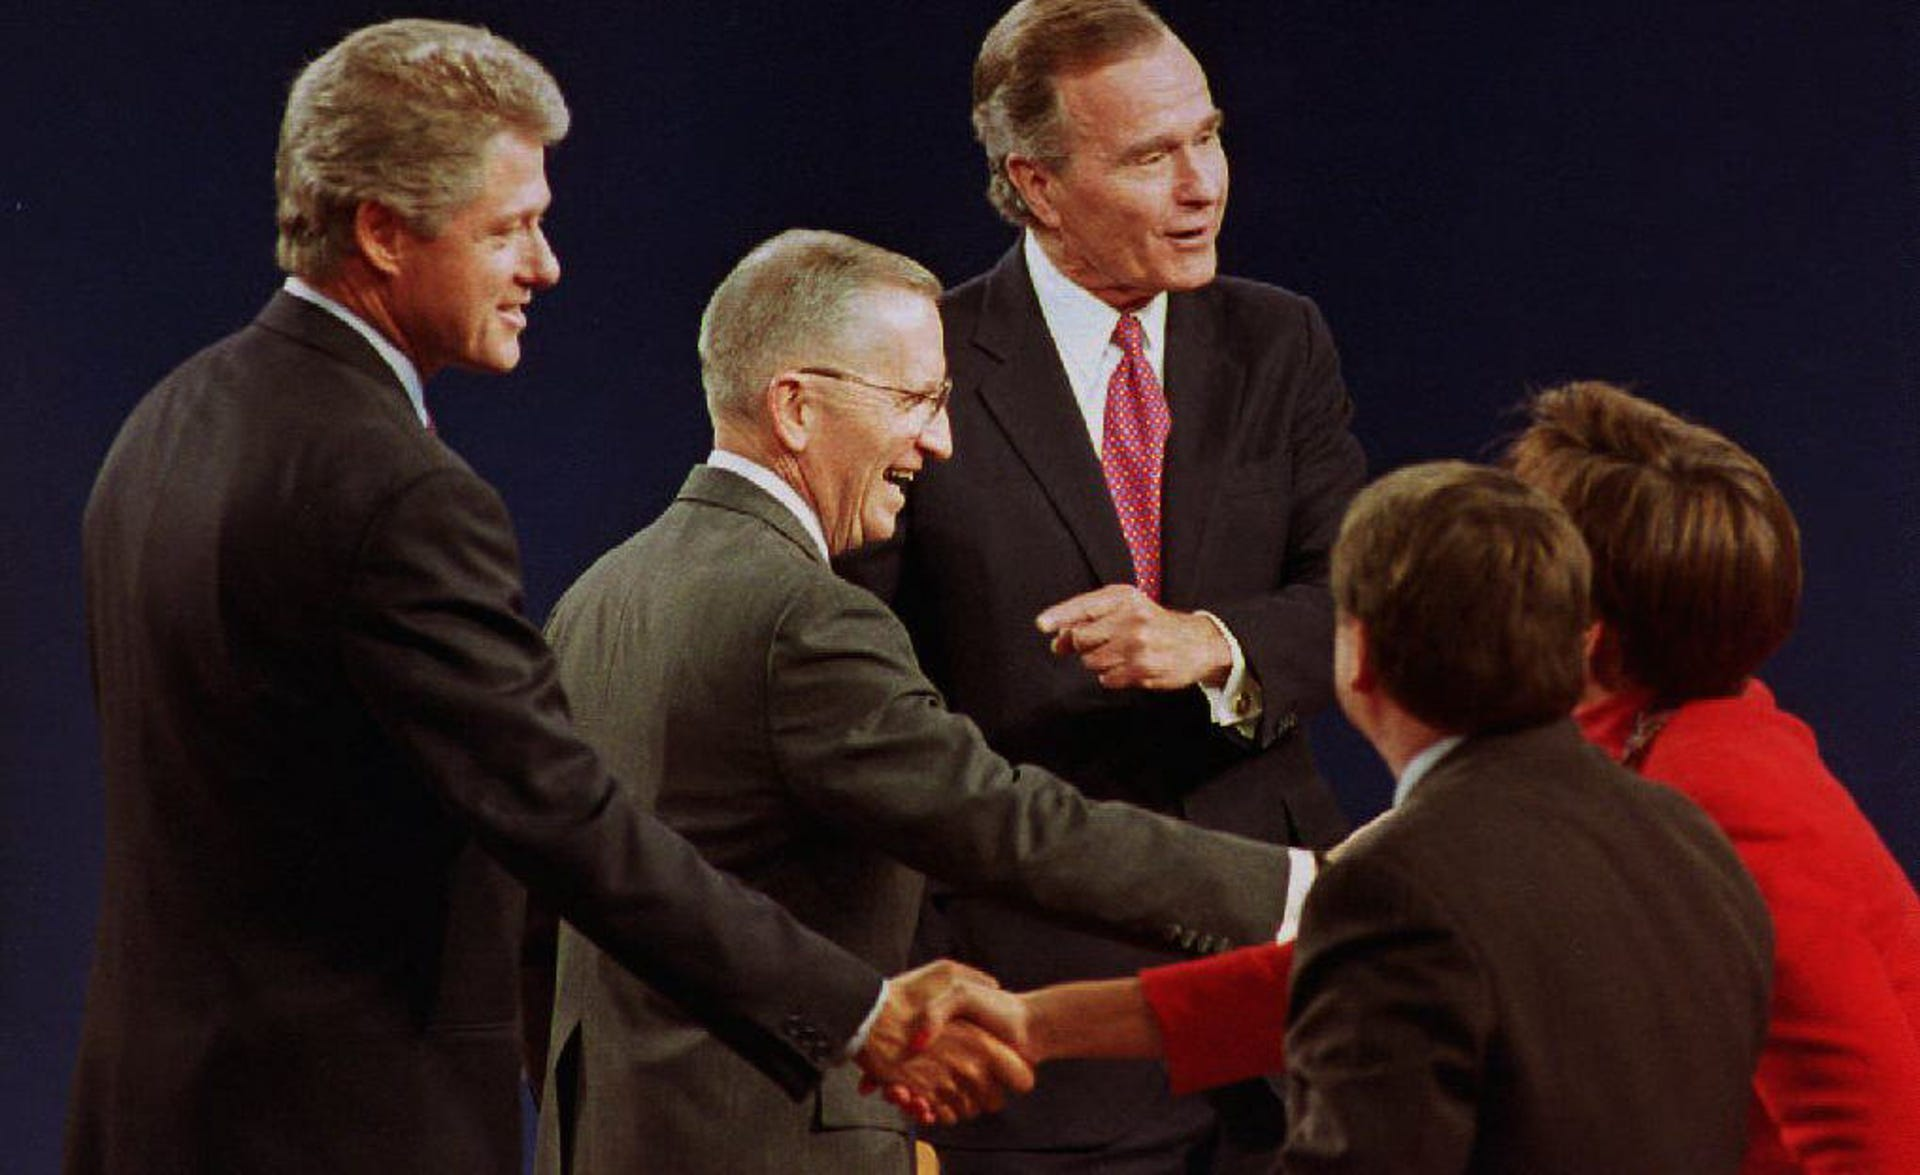 Former US presidential candidates Bill Clinton (L), Ross Perot (C) and President George Bush (R) shake hands with the panelists after the conclusion of their final debate in East Lansing, Mich. on Oct. 19, 1992